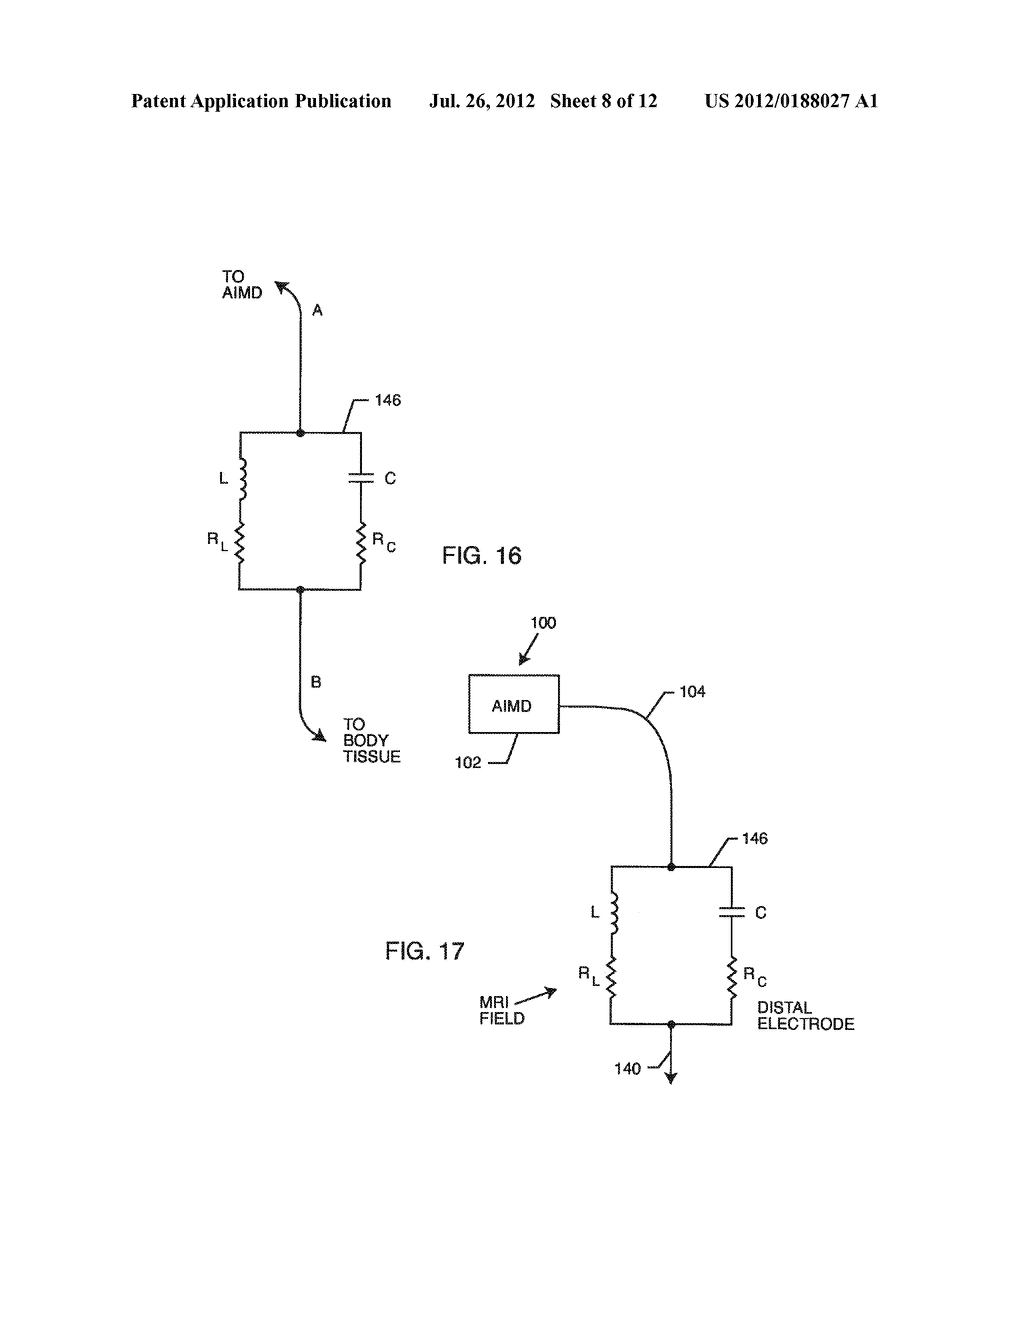 Band Stop Filter Employing A Capacitor And An Inductor Tank Circuit To Enhance Mri Compatibility Of Active Medical Devices Diagram Schematic